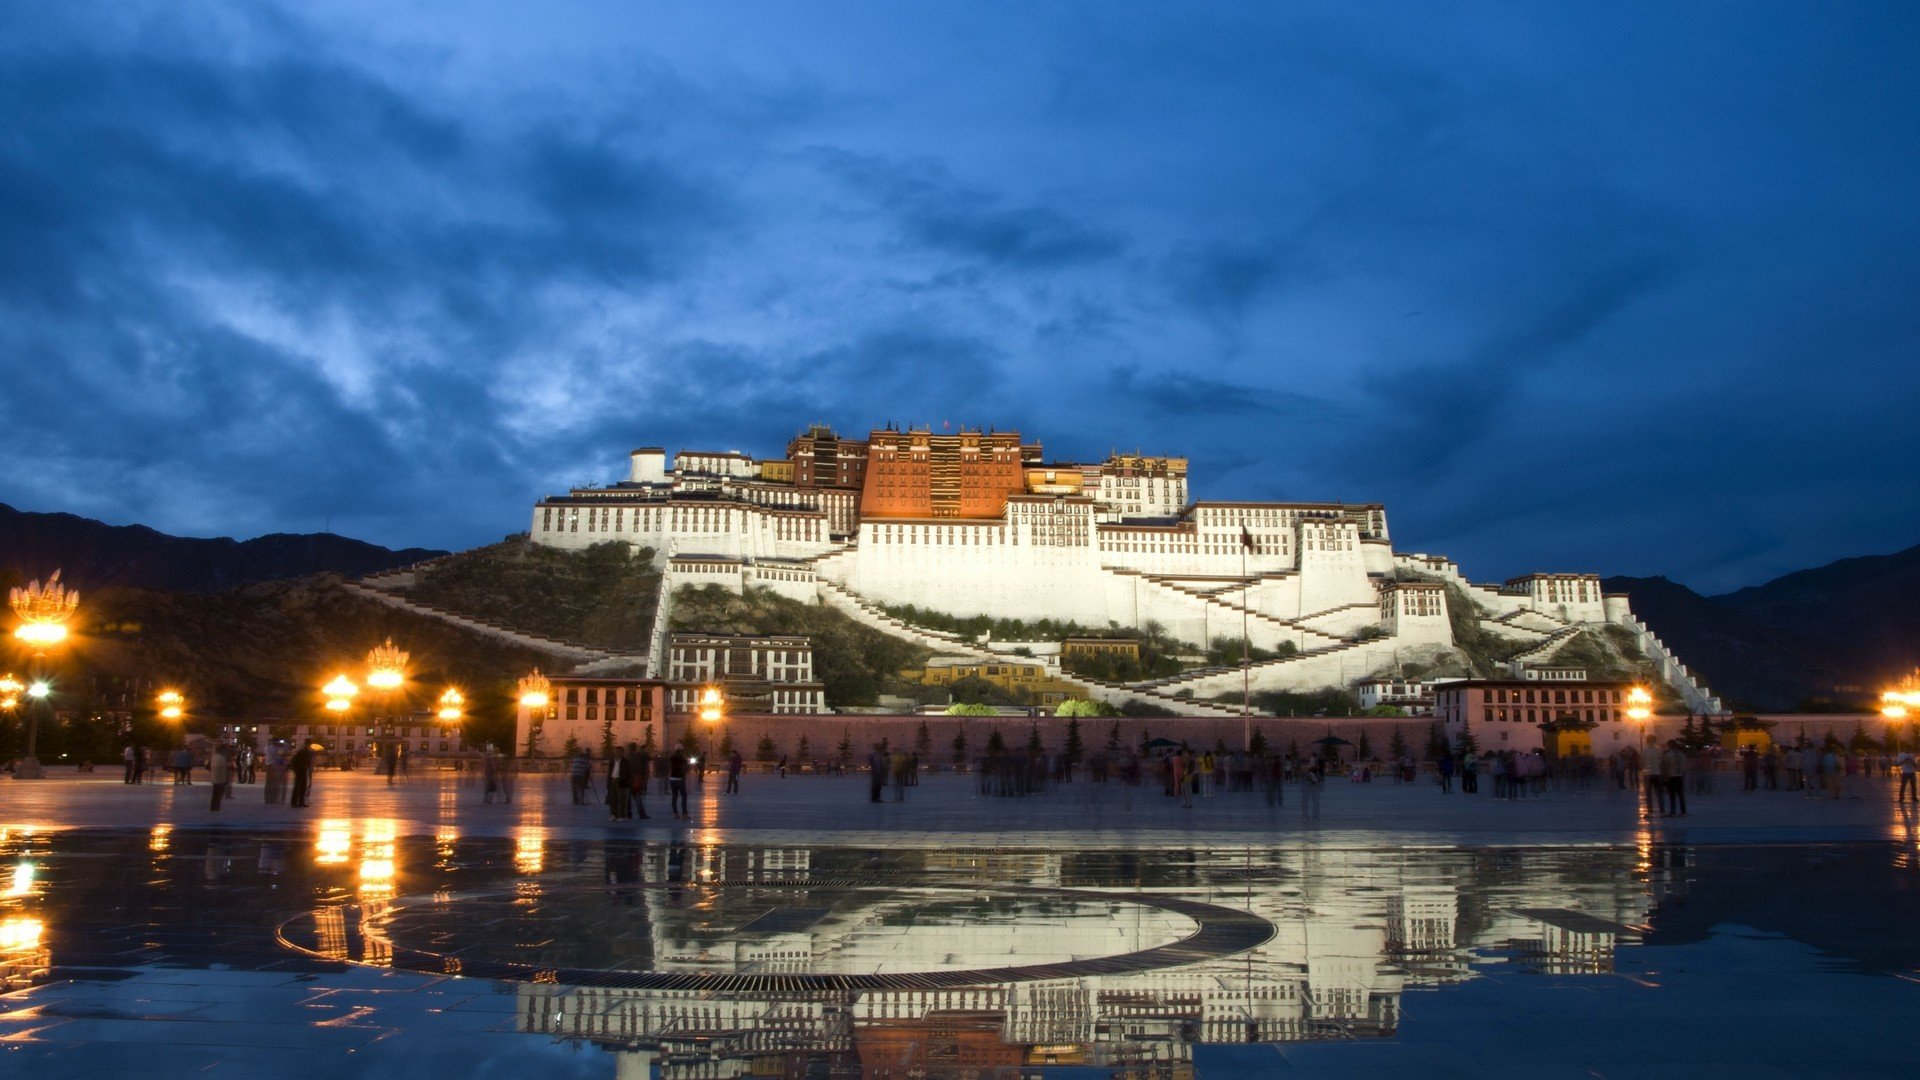 water lights China buildings Tibet reflections Potala